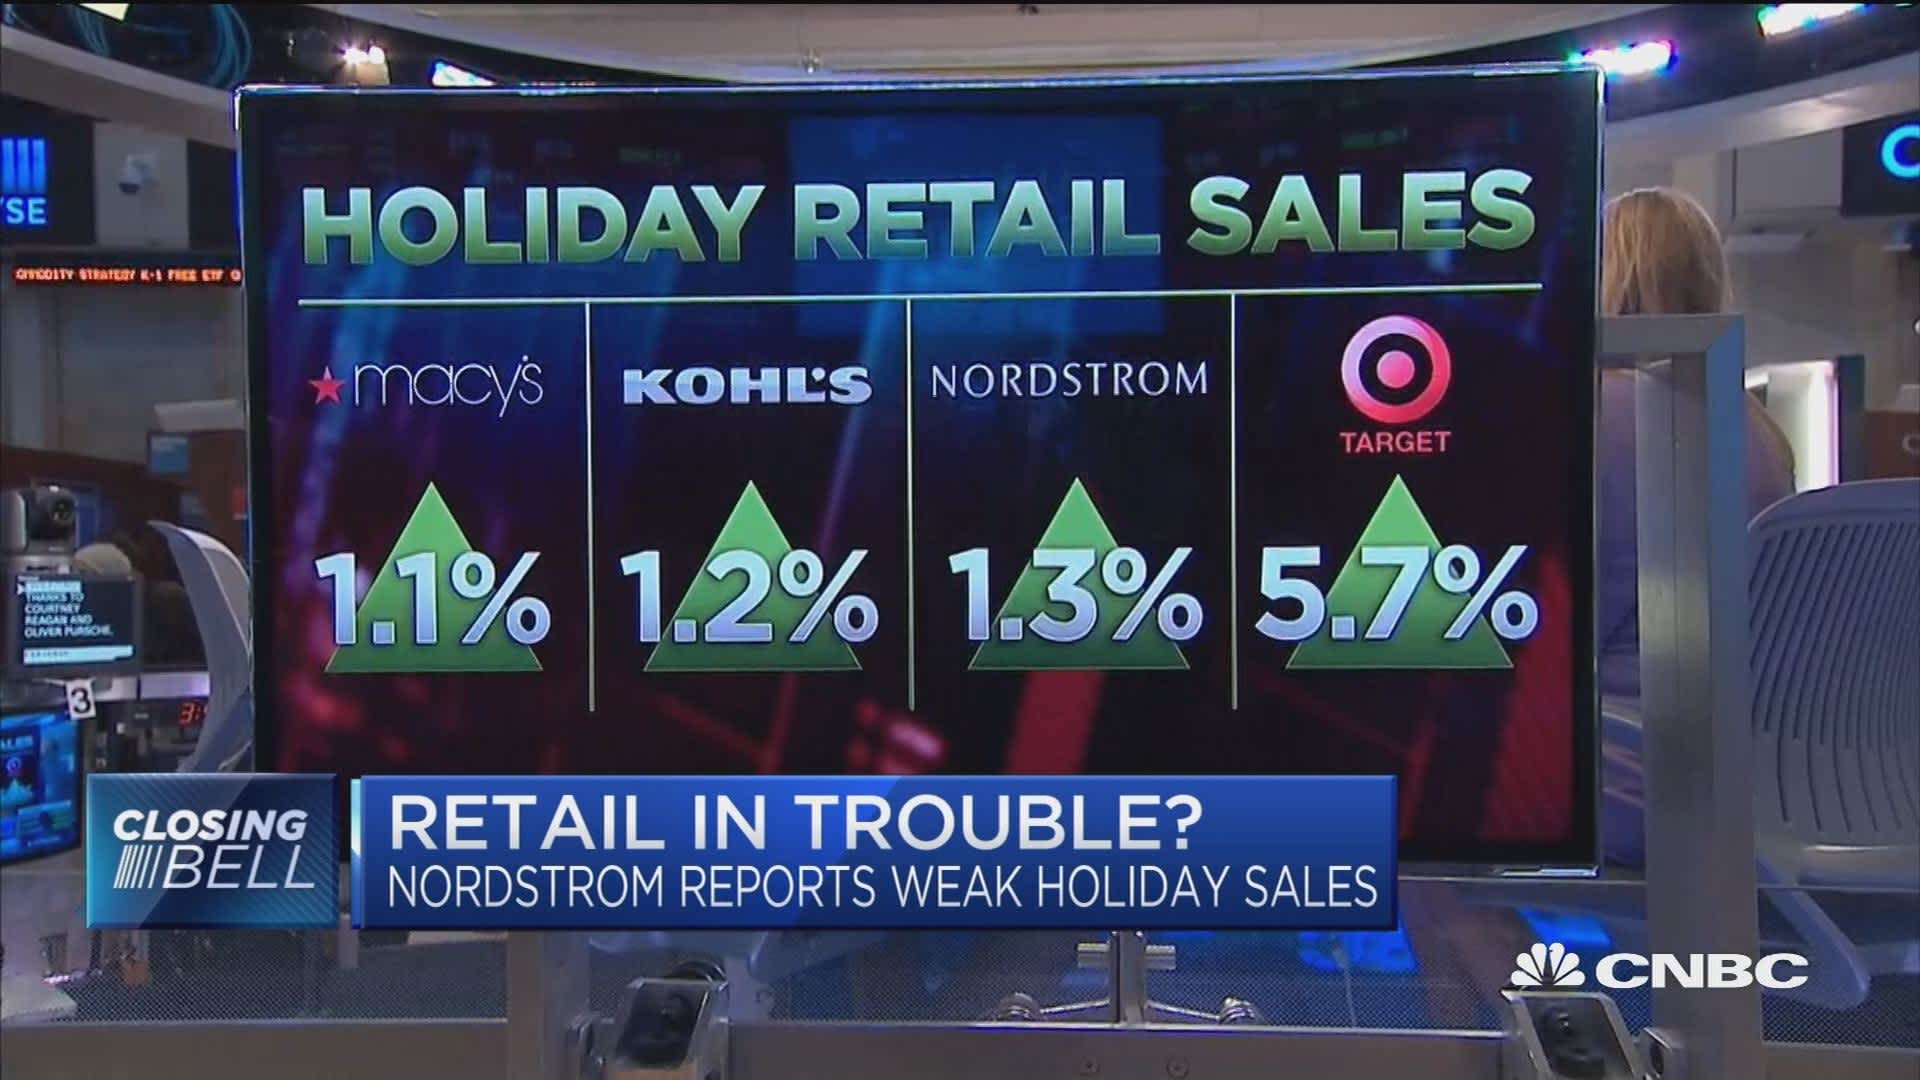 Could Nordstrom's weak holiday sales mean retail is in trouble?